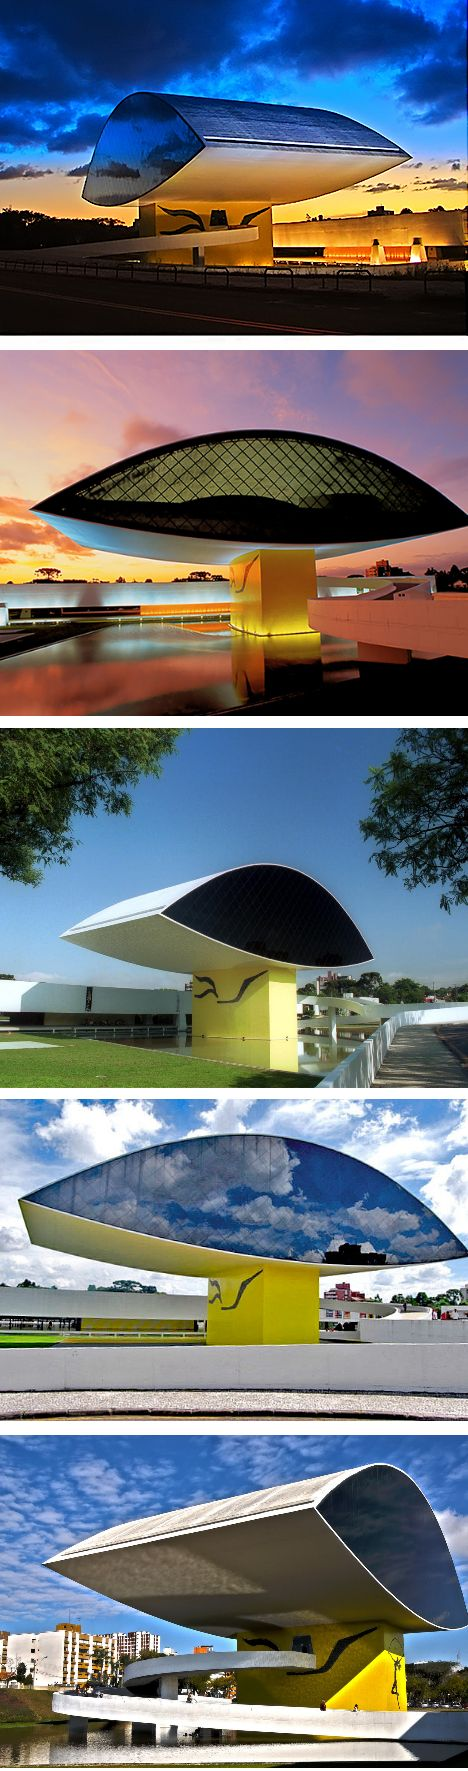 Oscar Niemeyer Museum - Curitiba - Brazil | architecture | Pinterest | Oscar niemeyer, Brazil and Museums